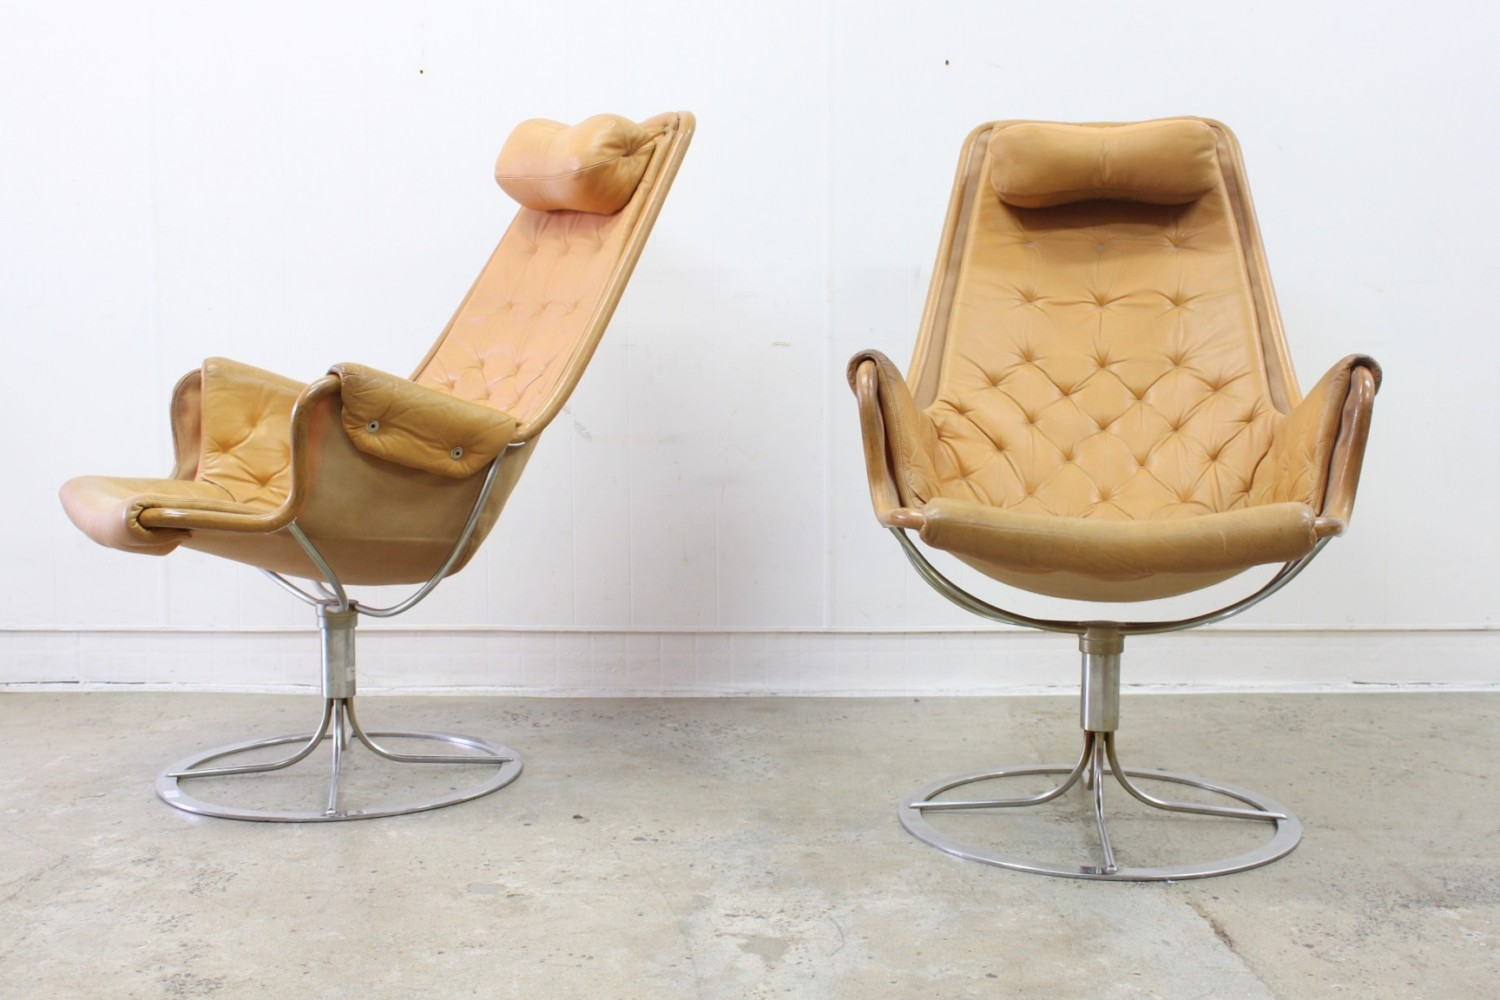 'Jetson chairs' by Bruno Mathsson